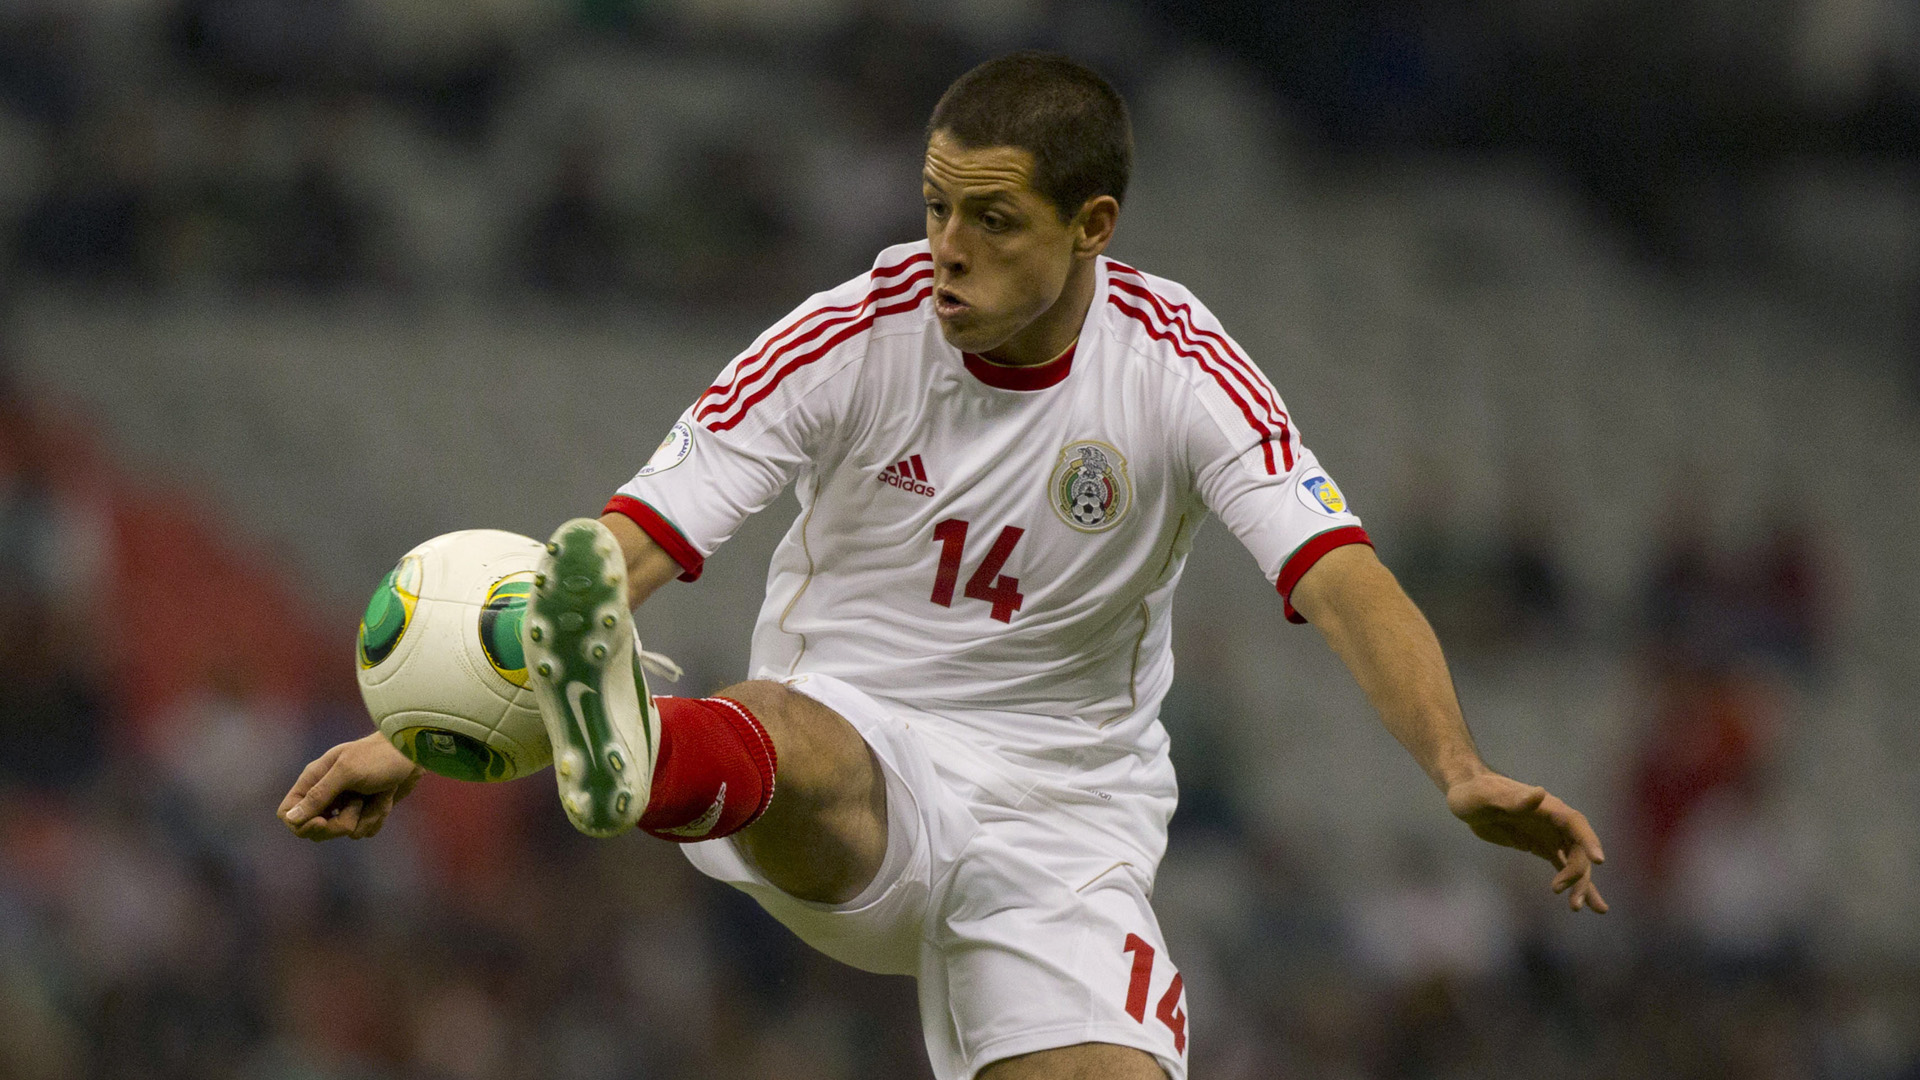 chicharito-FTR-060314.jpg